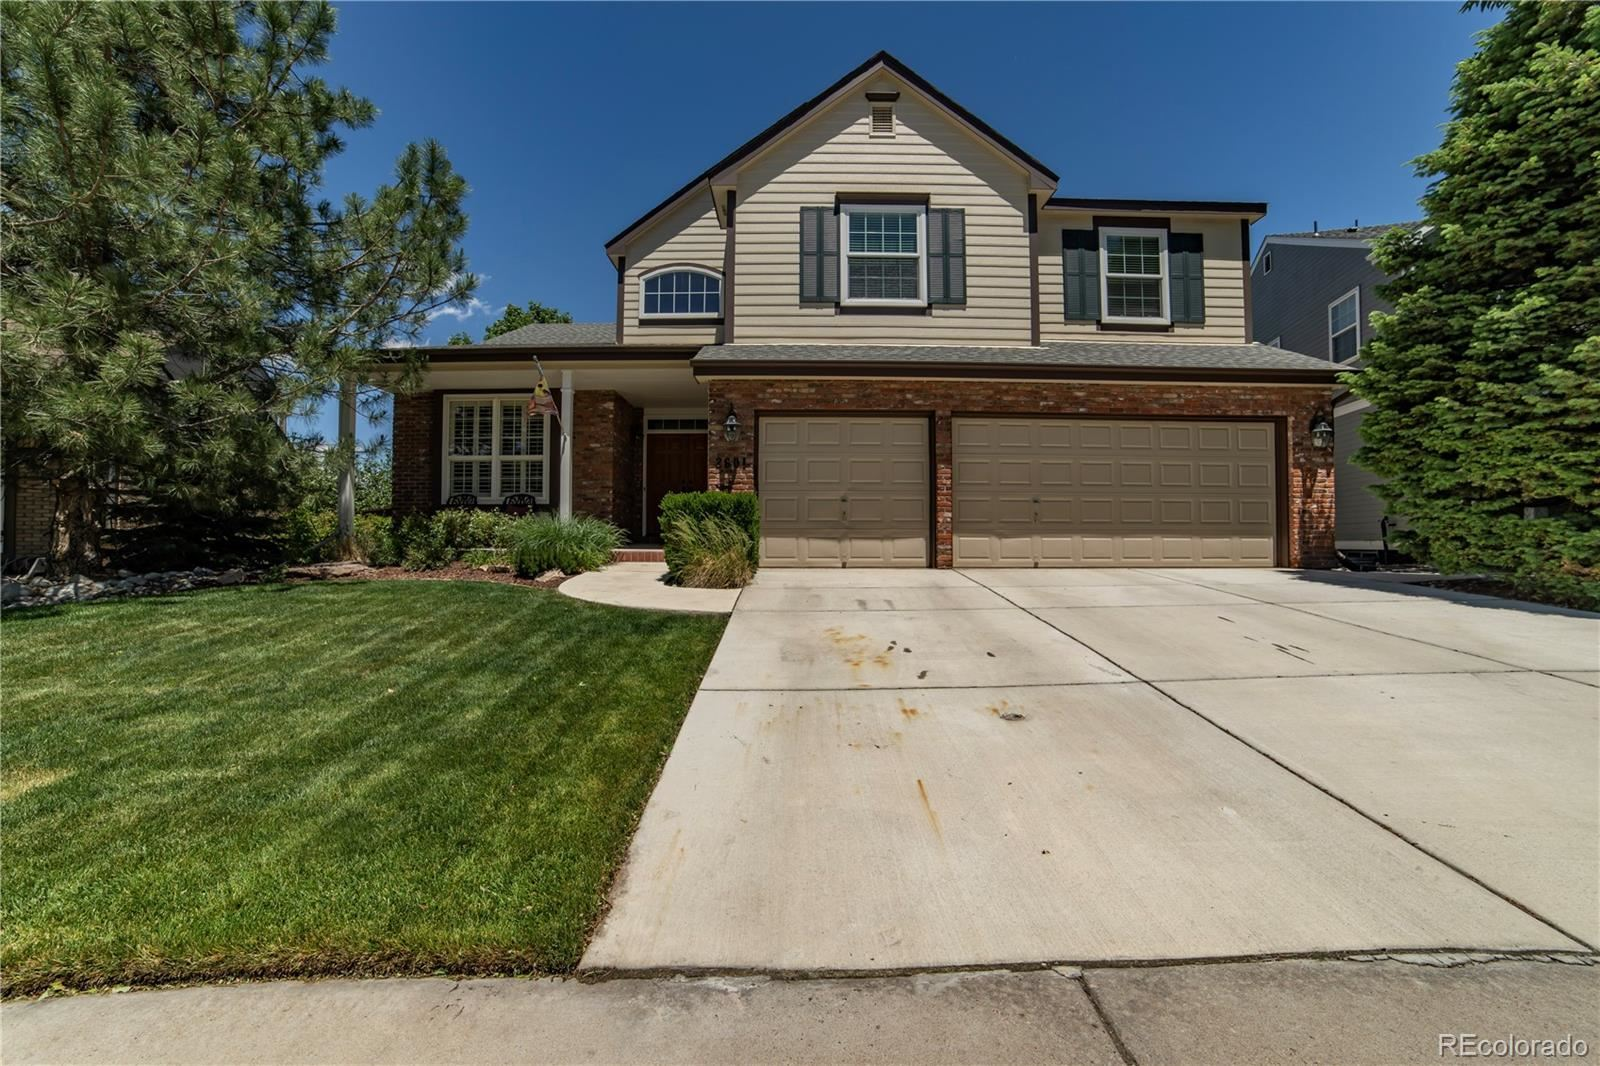 2601 Cactus Bluff Place, Highlands Ranch, CO 80129 - #: 3414433